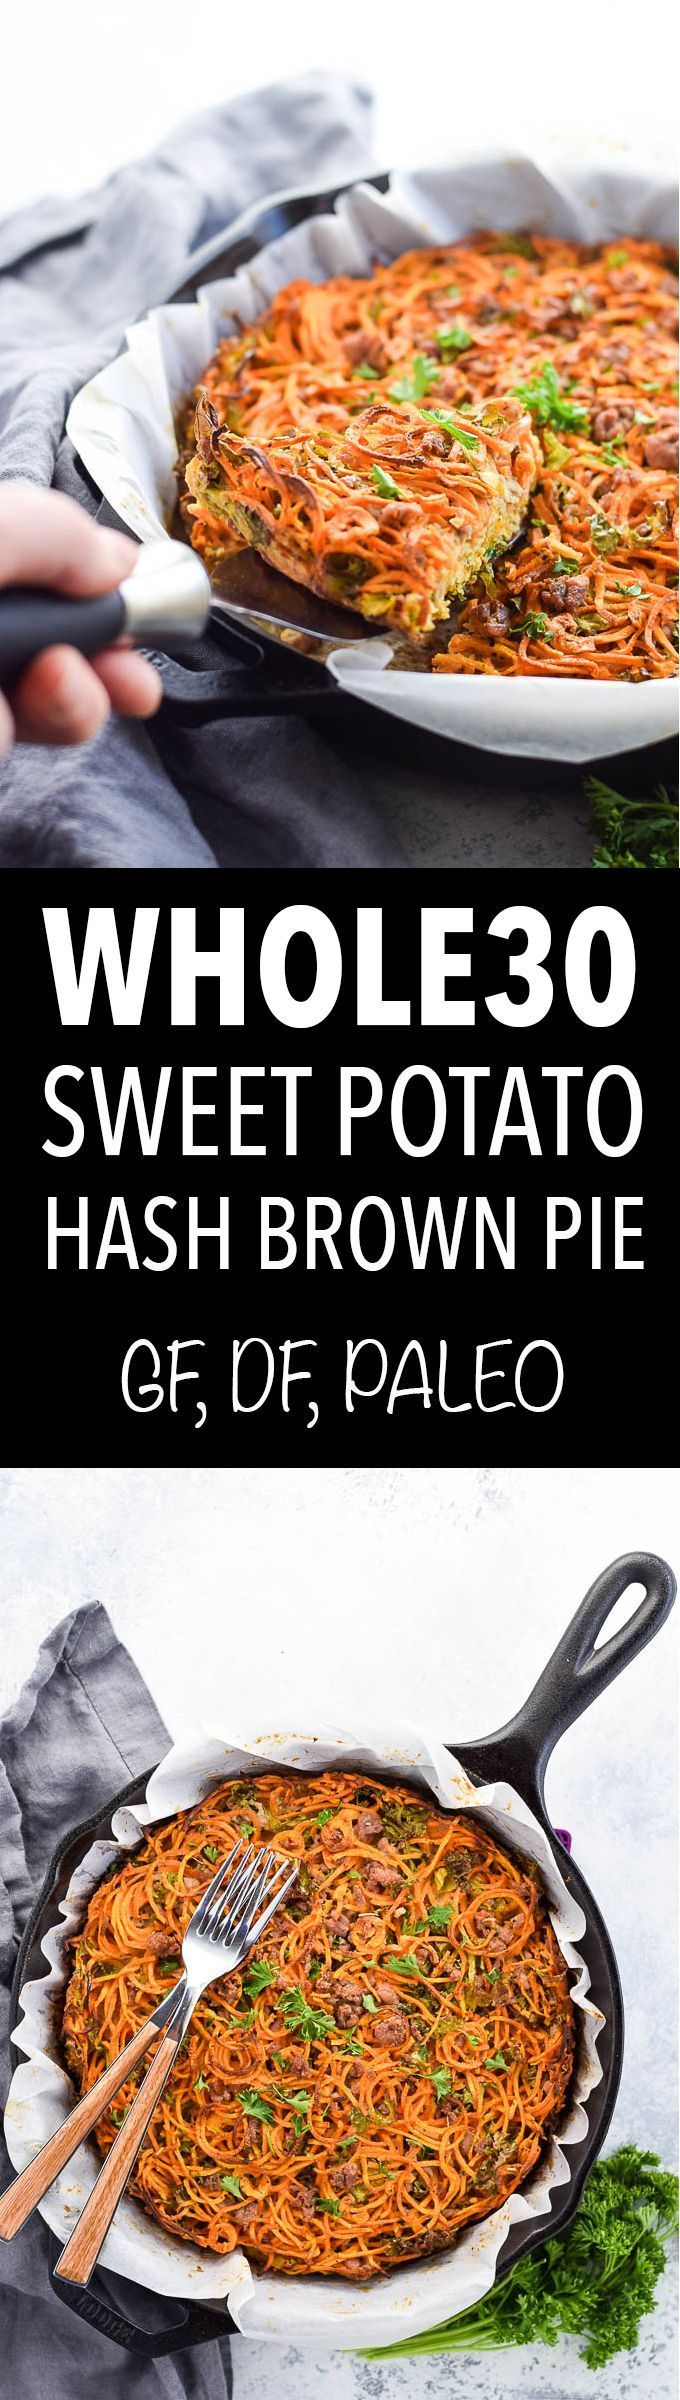 Sweet potato hash brown pie! This Whole30 breakfast is made with sweet potato noodles, eggs, kale and ground pork.